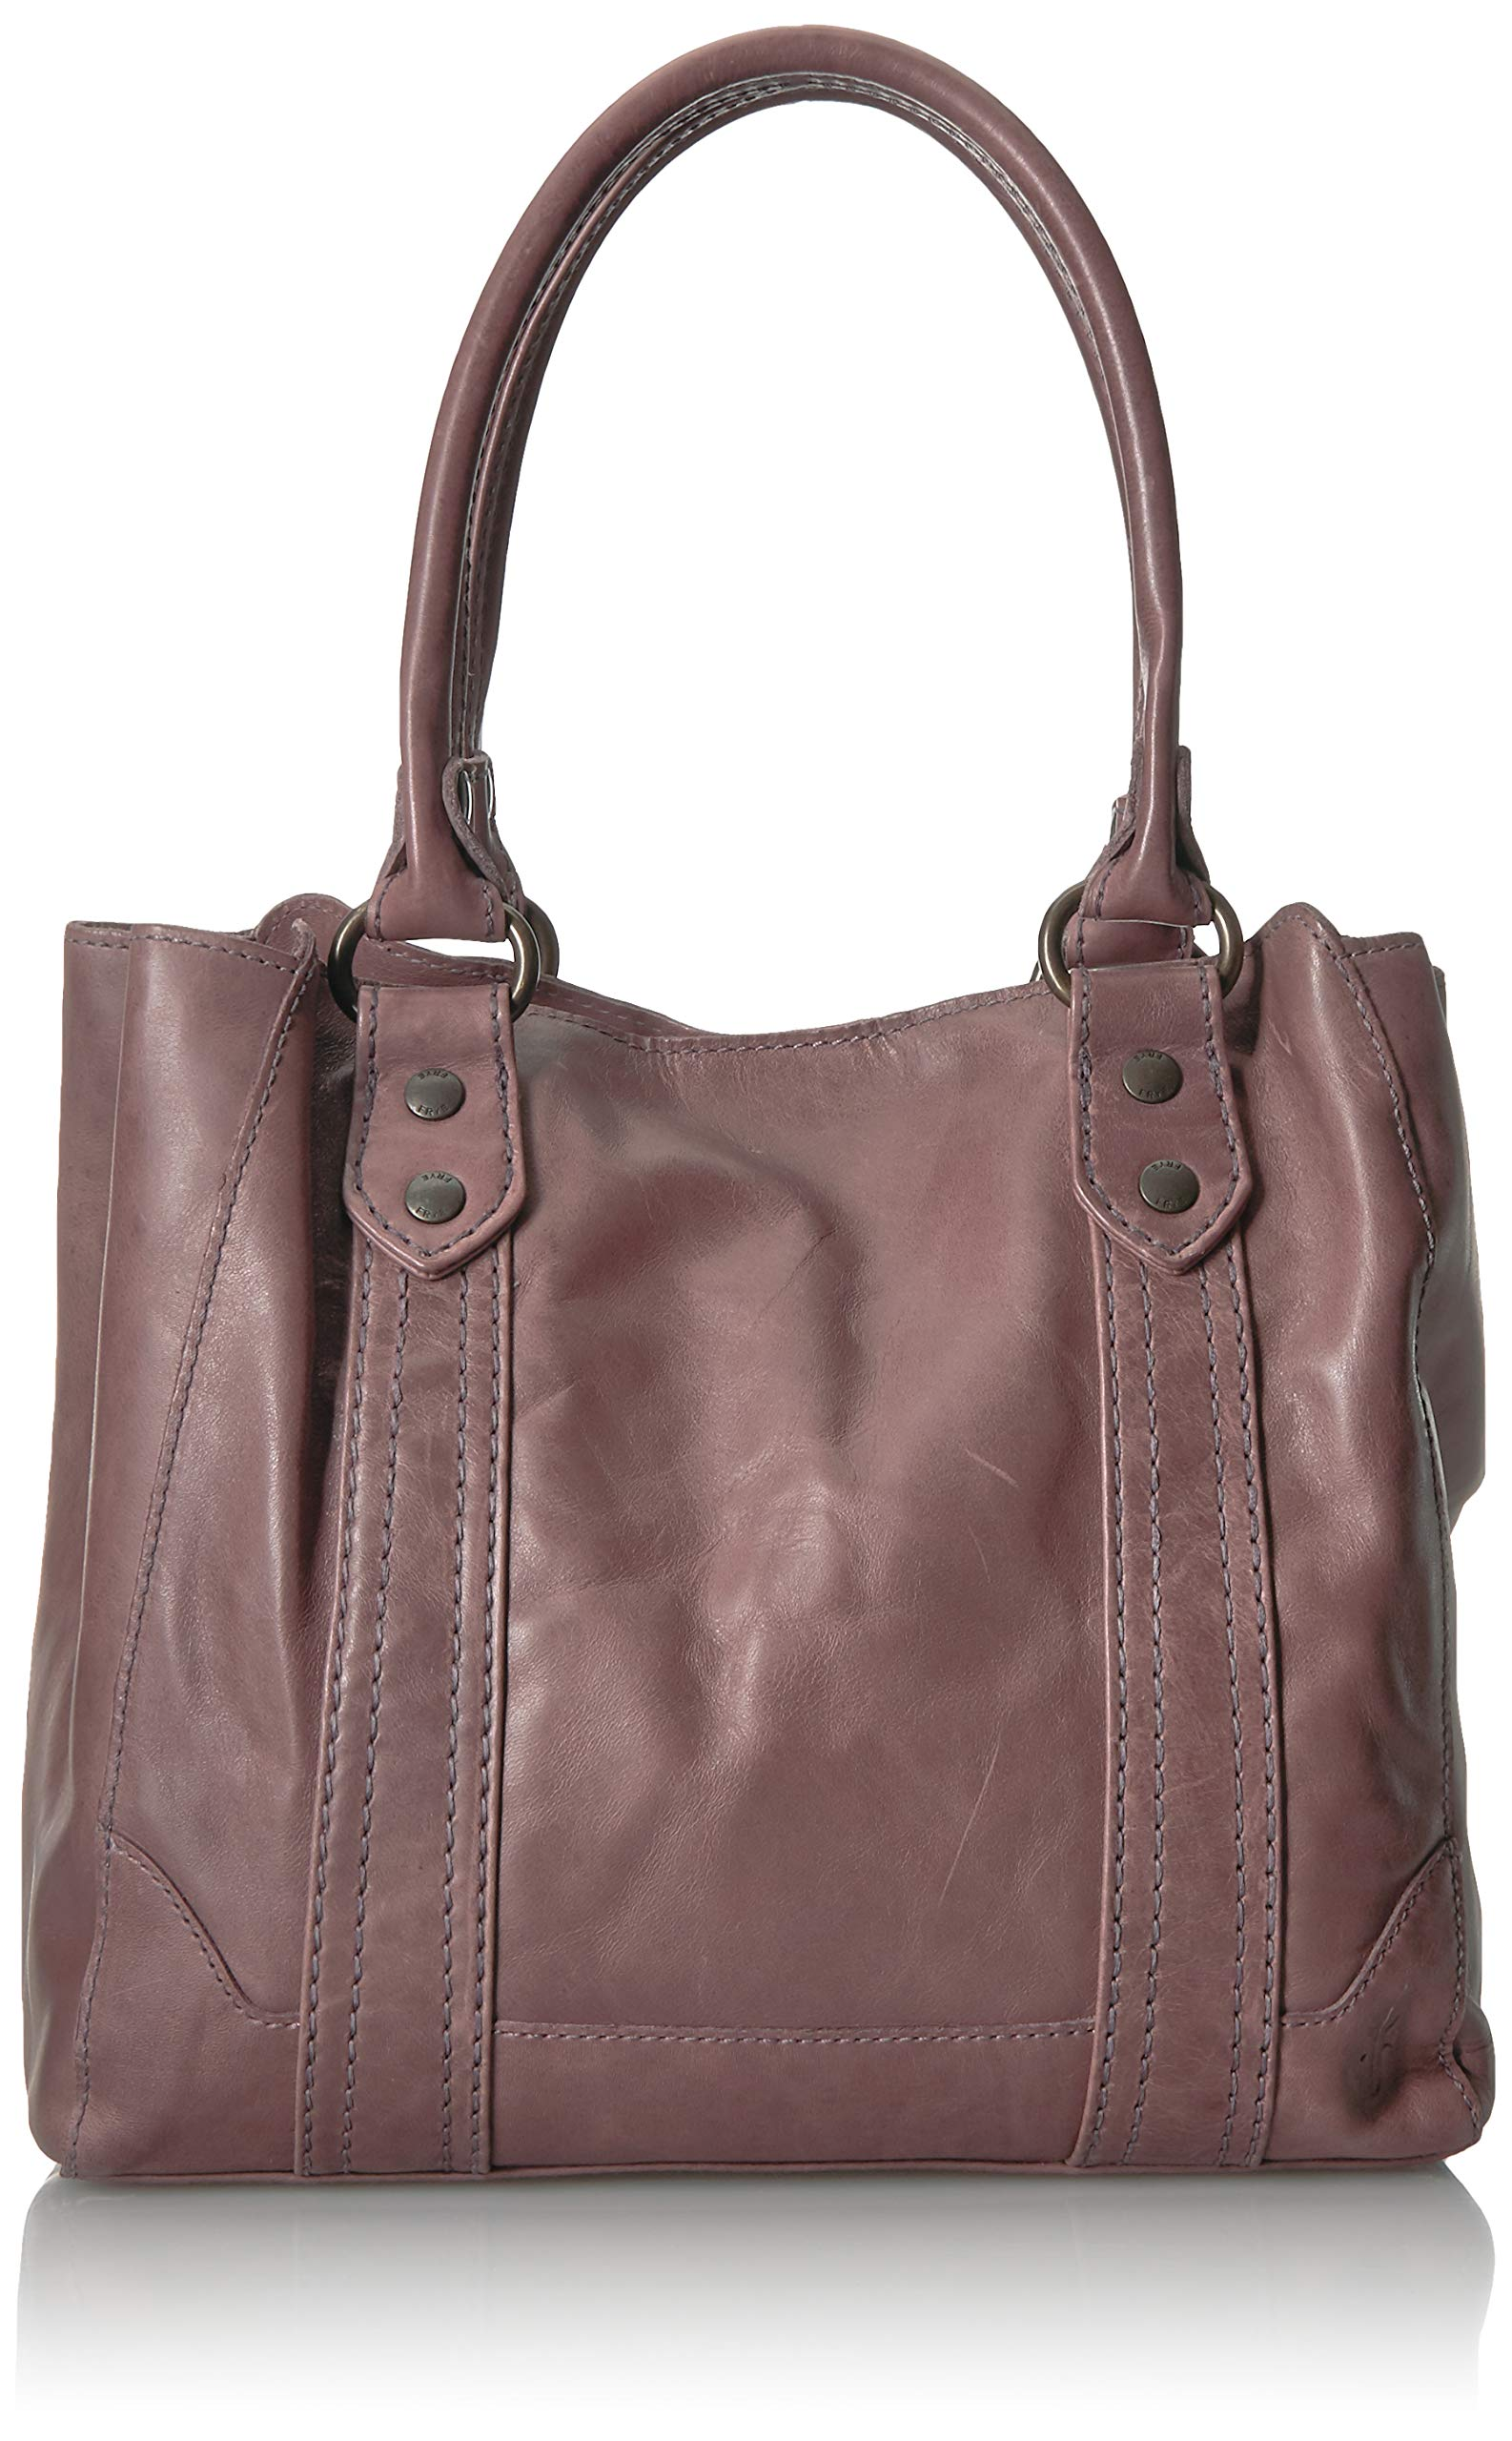 FRYE Melissa Tote Leather Handbag, lilac